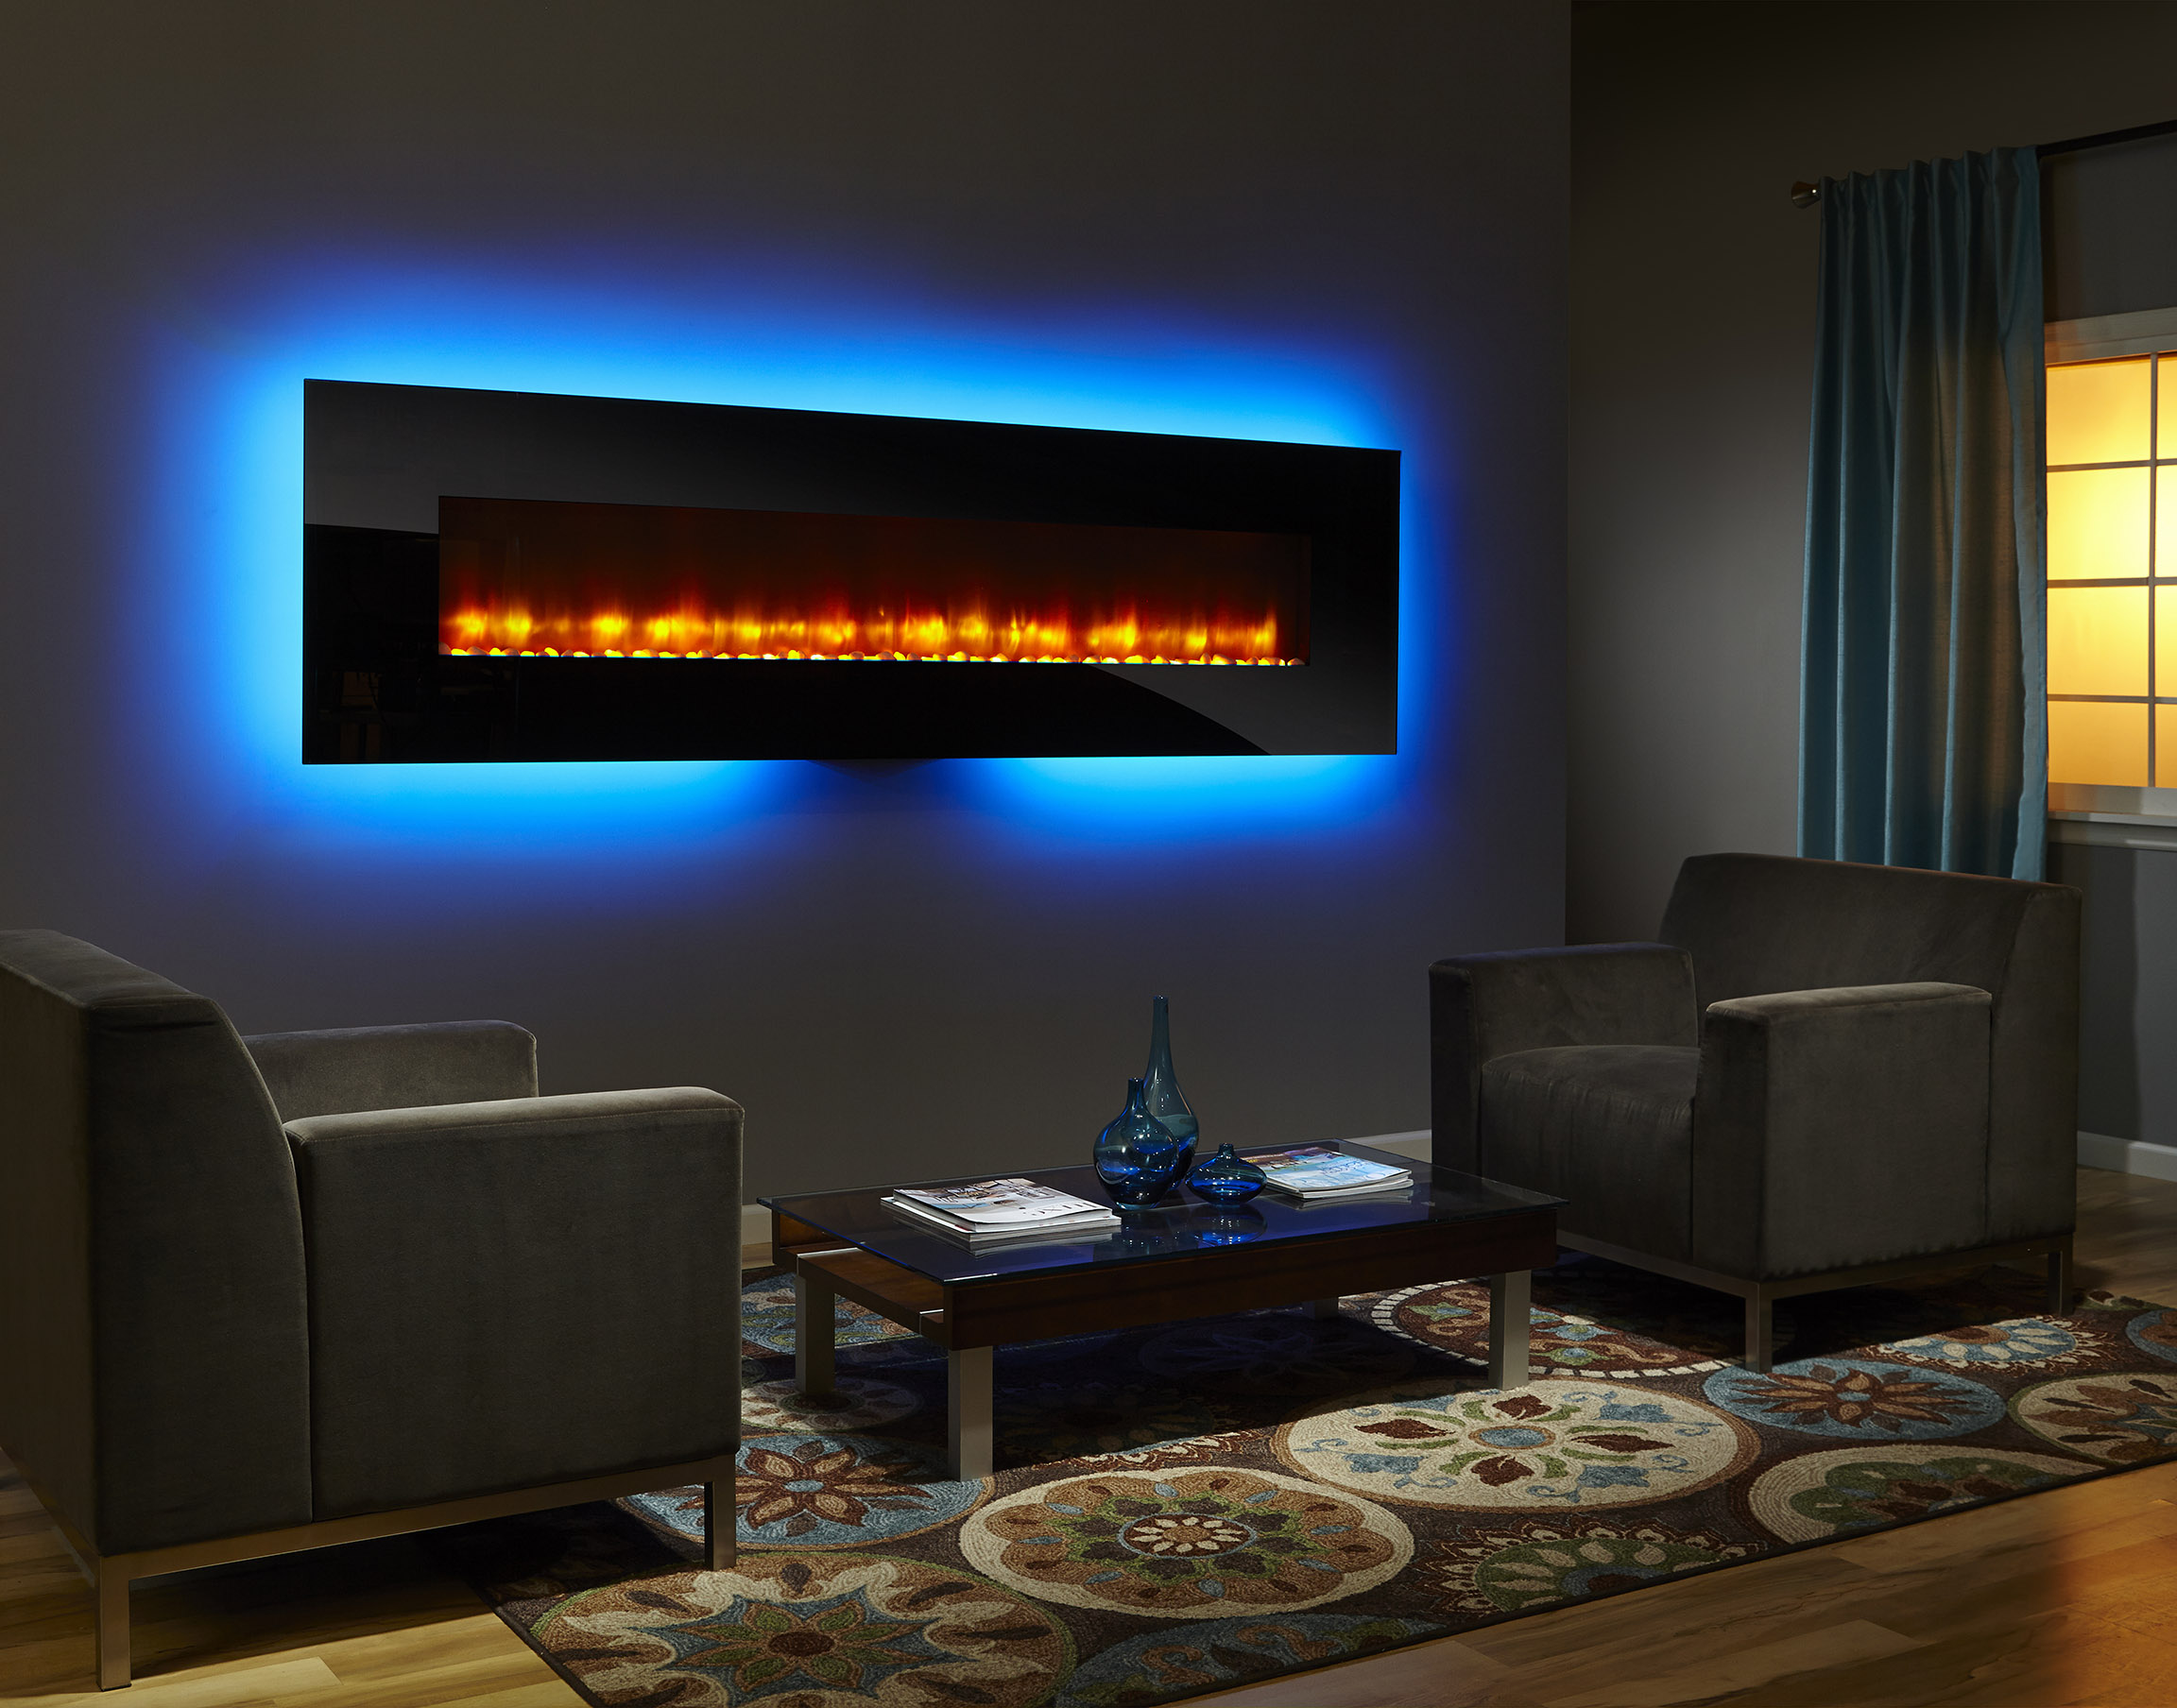 Simplifire Wall Mount 94 Photo Black Orange Flame Lt Blue Light Color Low Res Forge